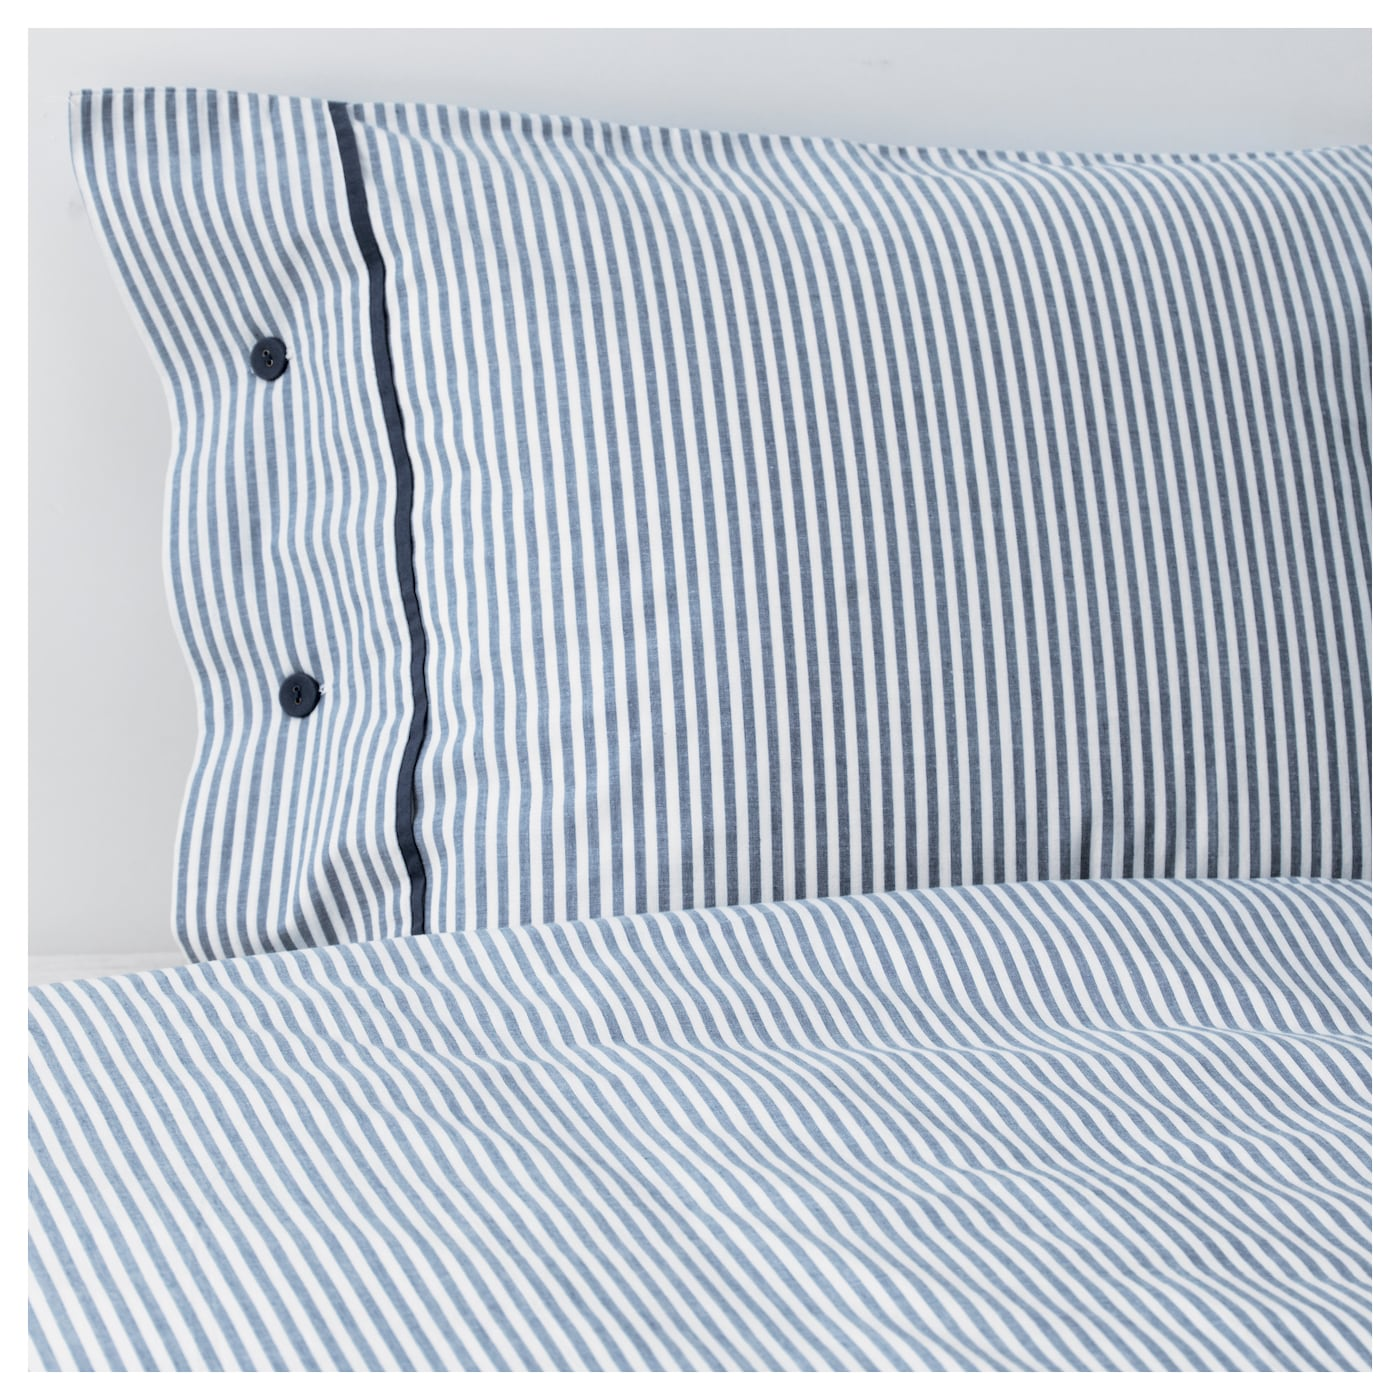 nyponros quilt cover and 4 pillowcases white blue 200x200 50x80 cm ikea. Black Bedroom Furniture Sets. Home Design Ideas